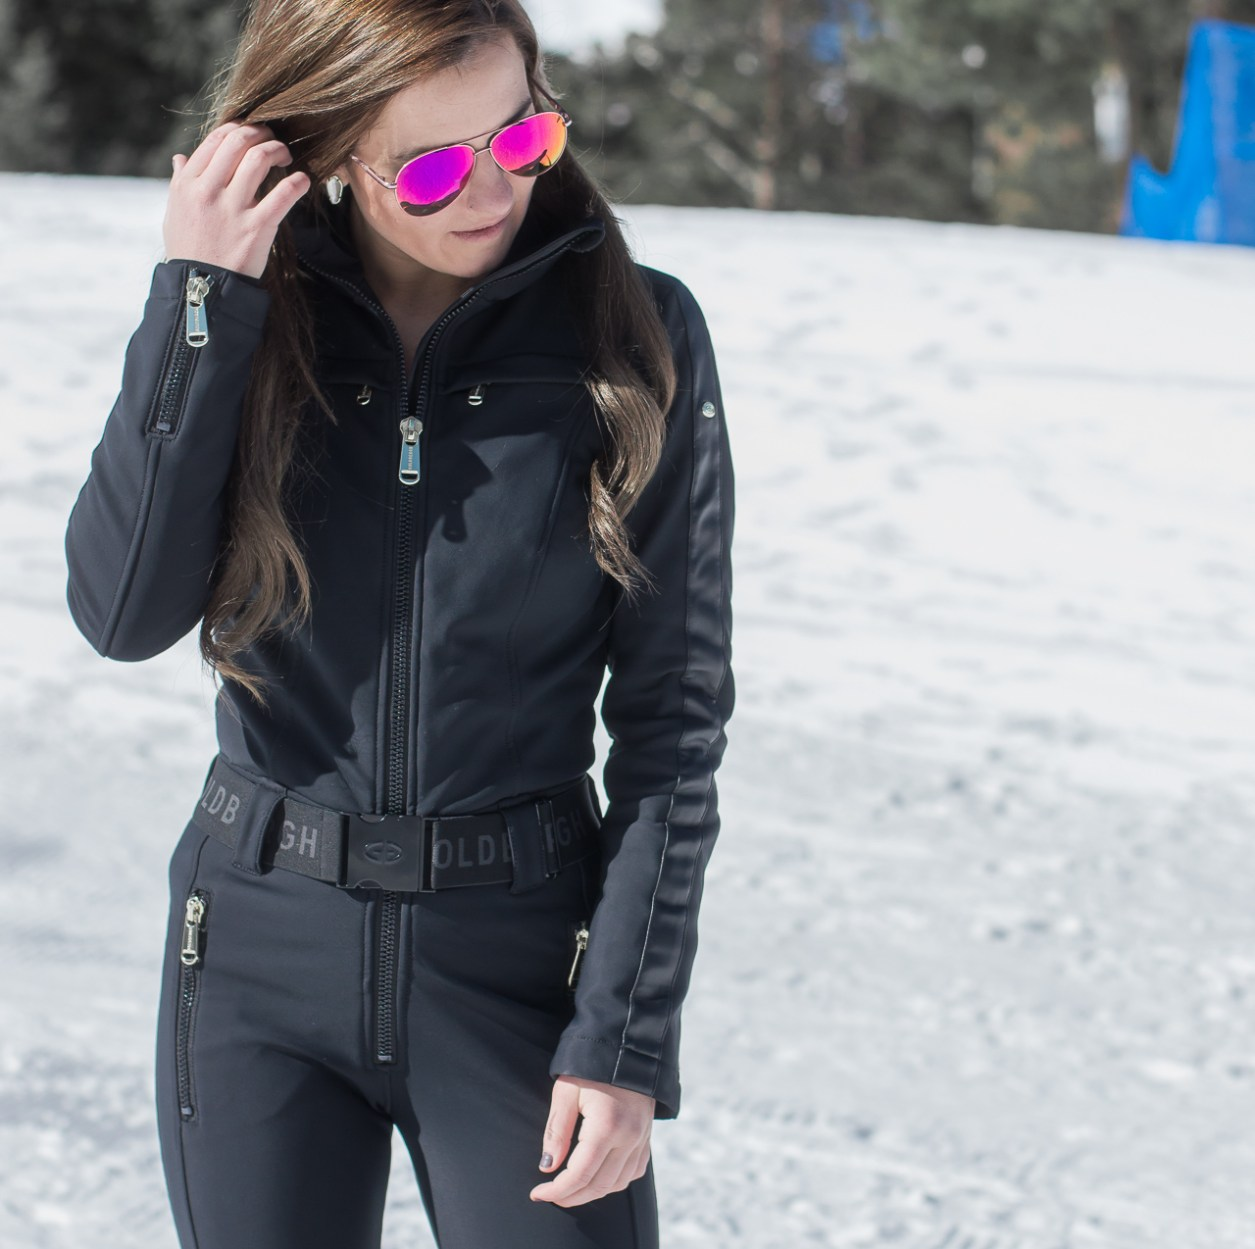 Trendy Ski Suit Outfit